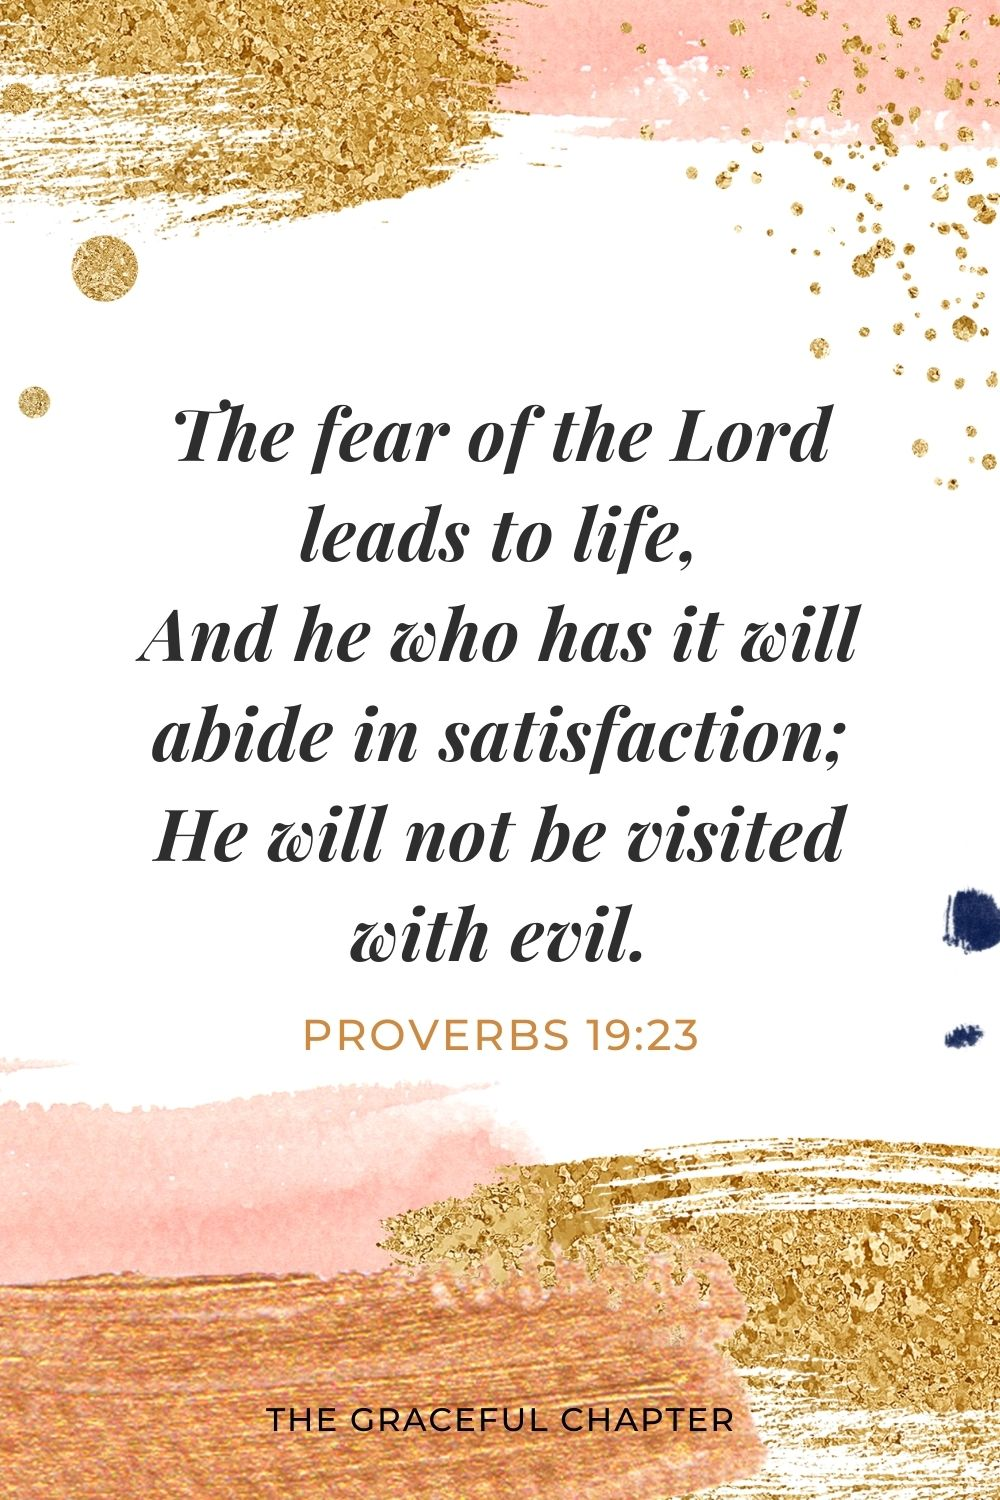 The fear of the Lord leads to life, And he who has it will abide in satisfaction; He will not be visited with evil. Proverbs 19:23